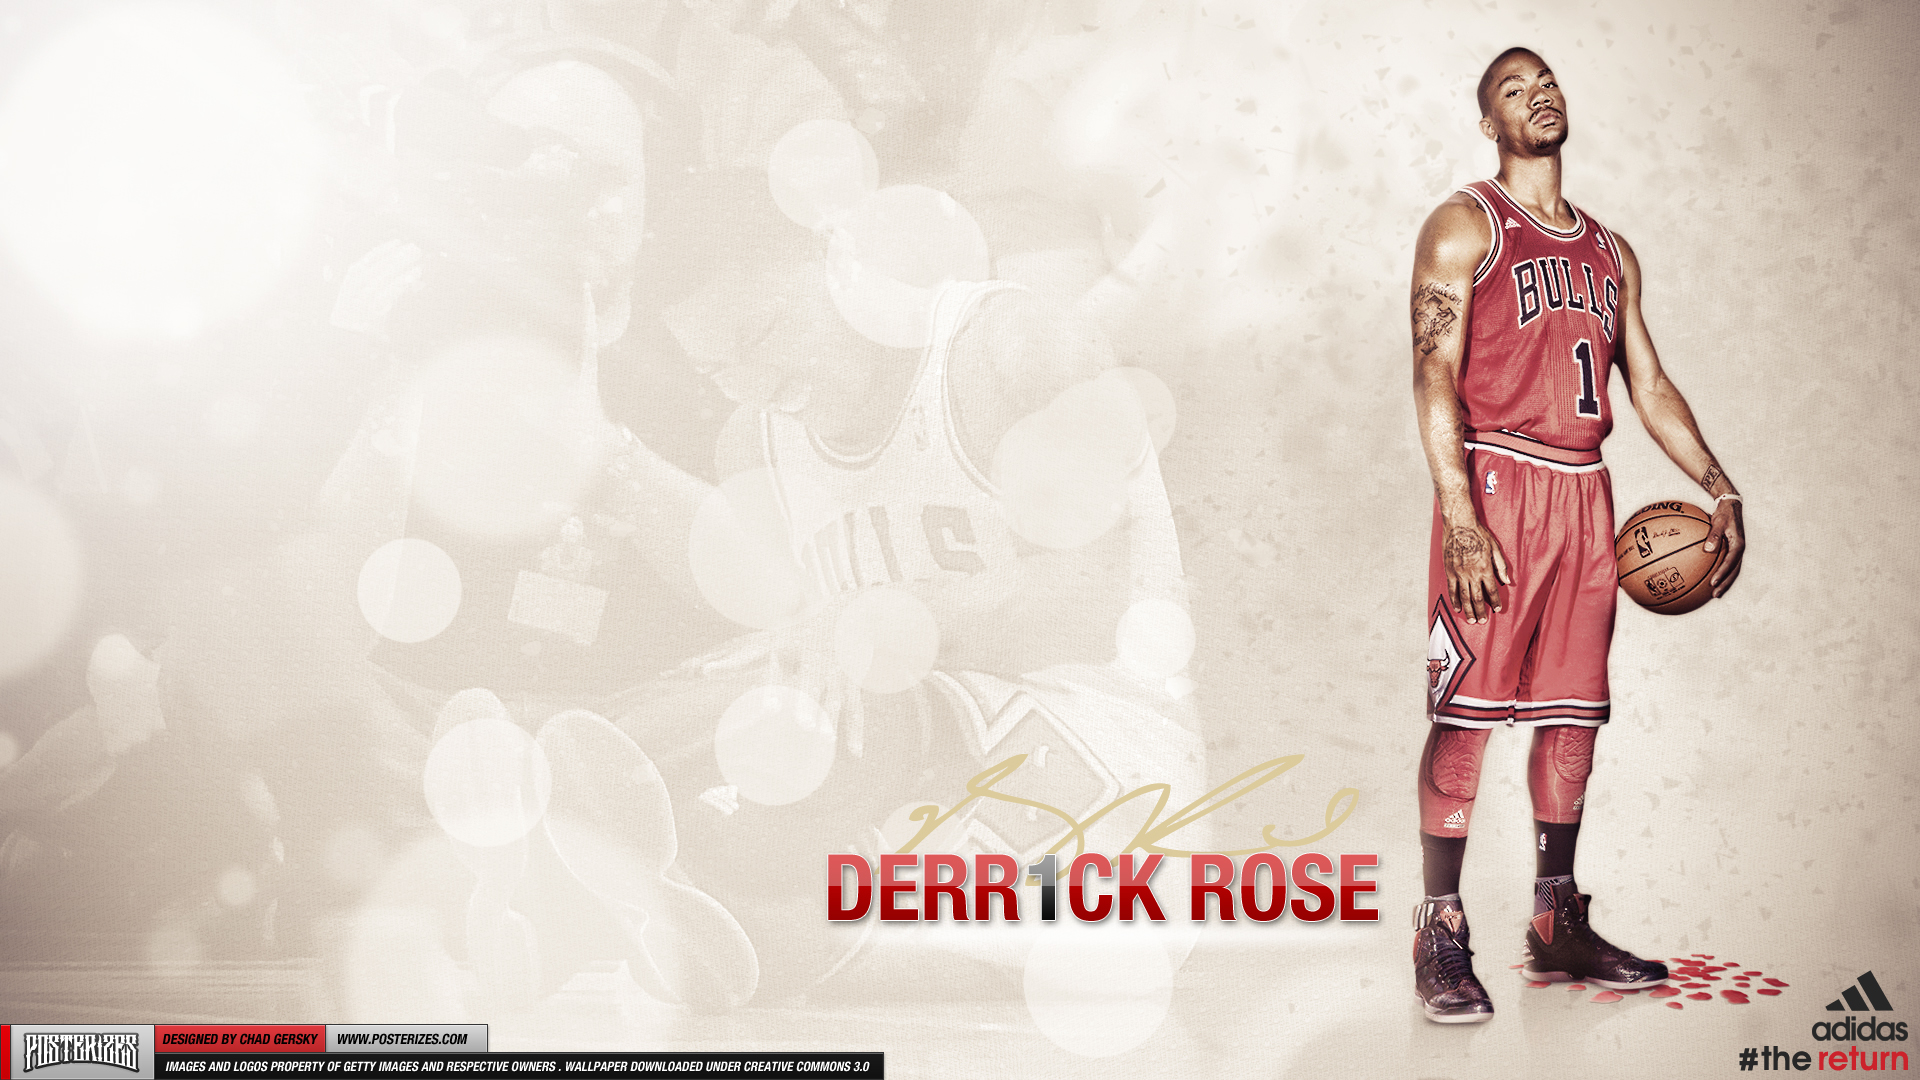 Derrick rose wallpapers high resolution and quality download derrick rose high definition voltagebd Image collections